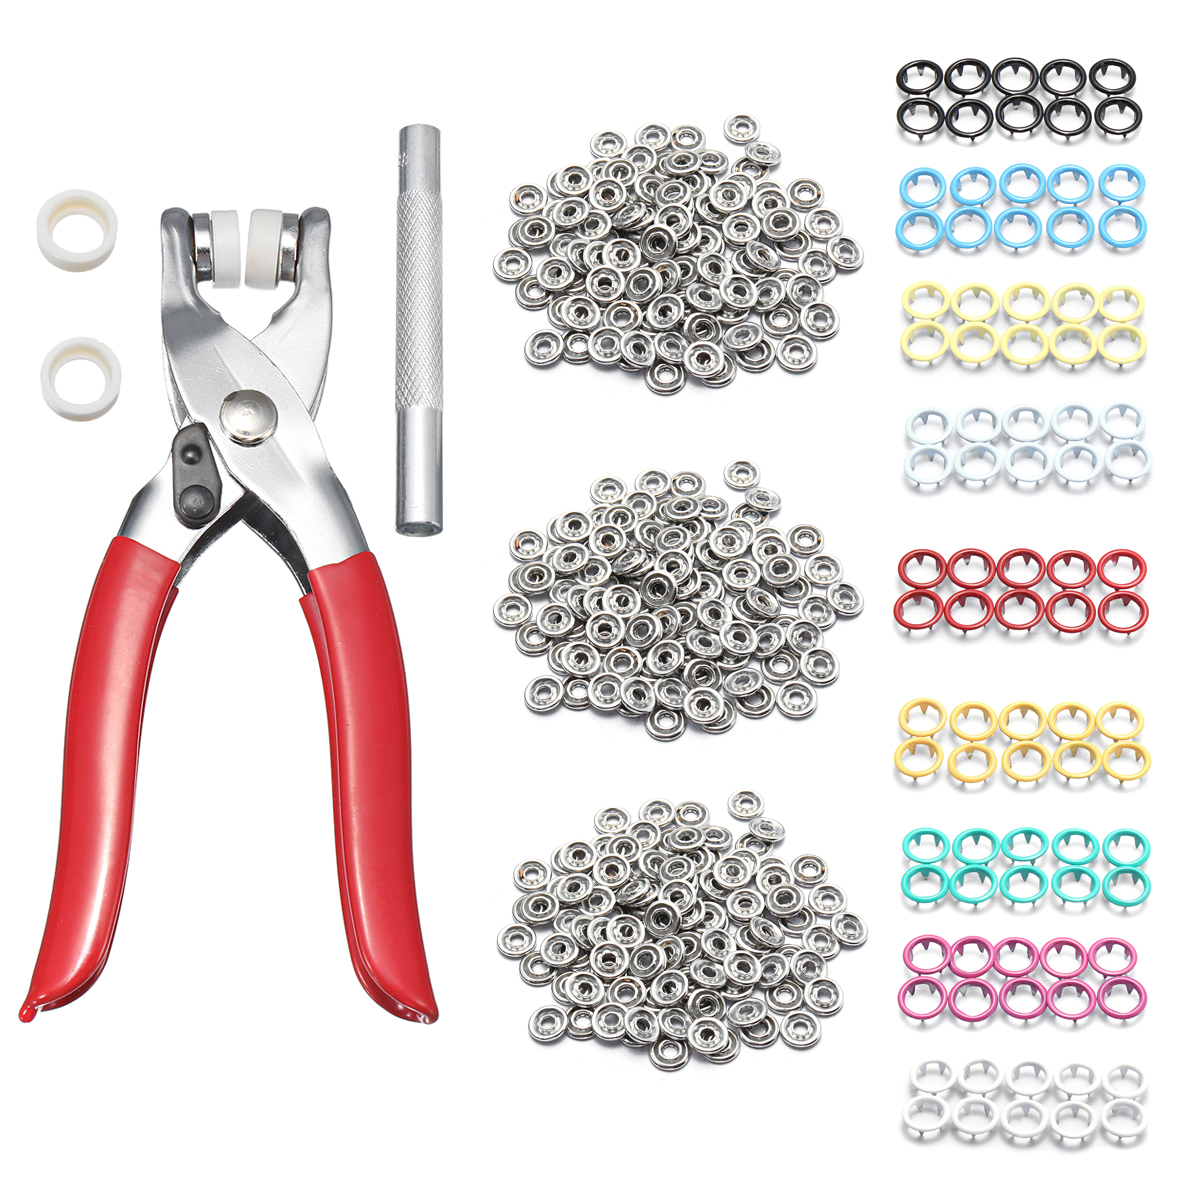 9.5mm 100 Sets 10 Colors Prong Ring Press Studs Snap Fasteners Clip Plier